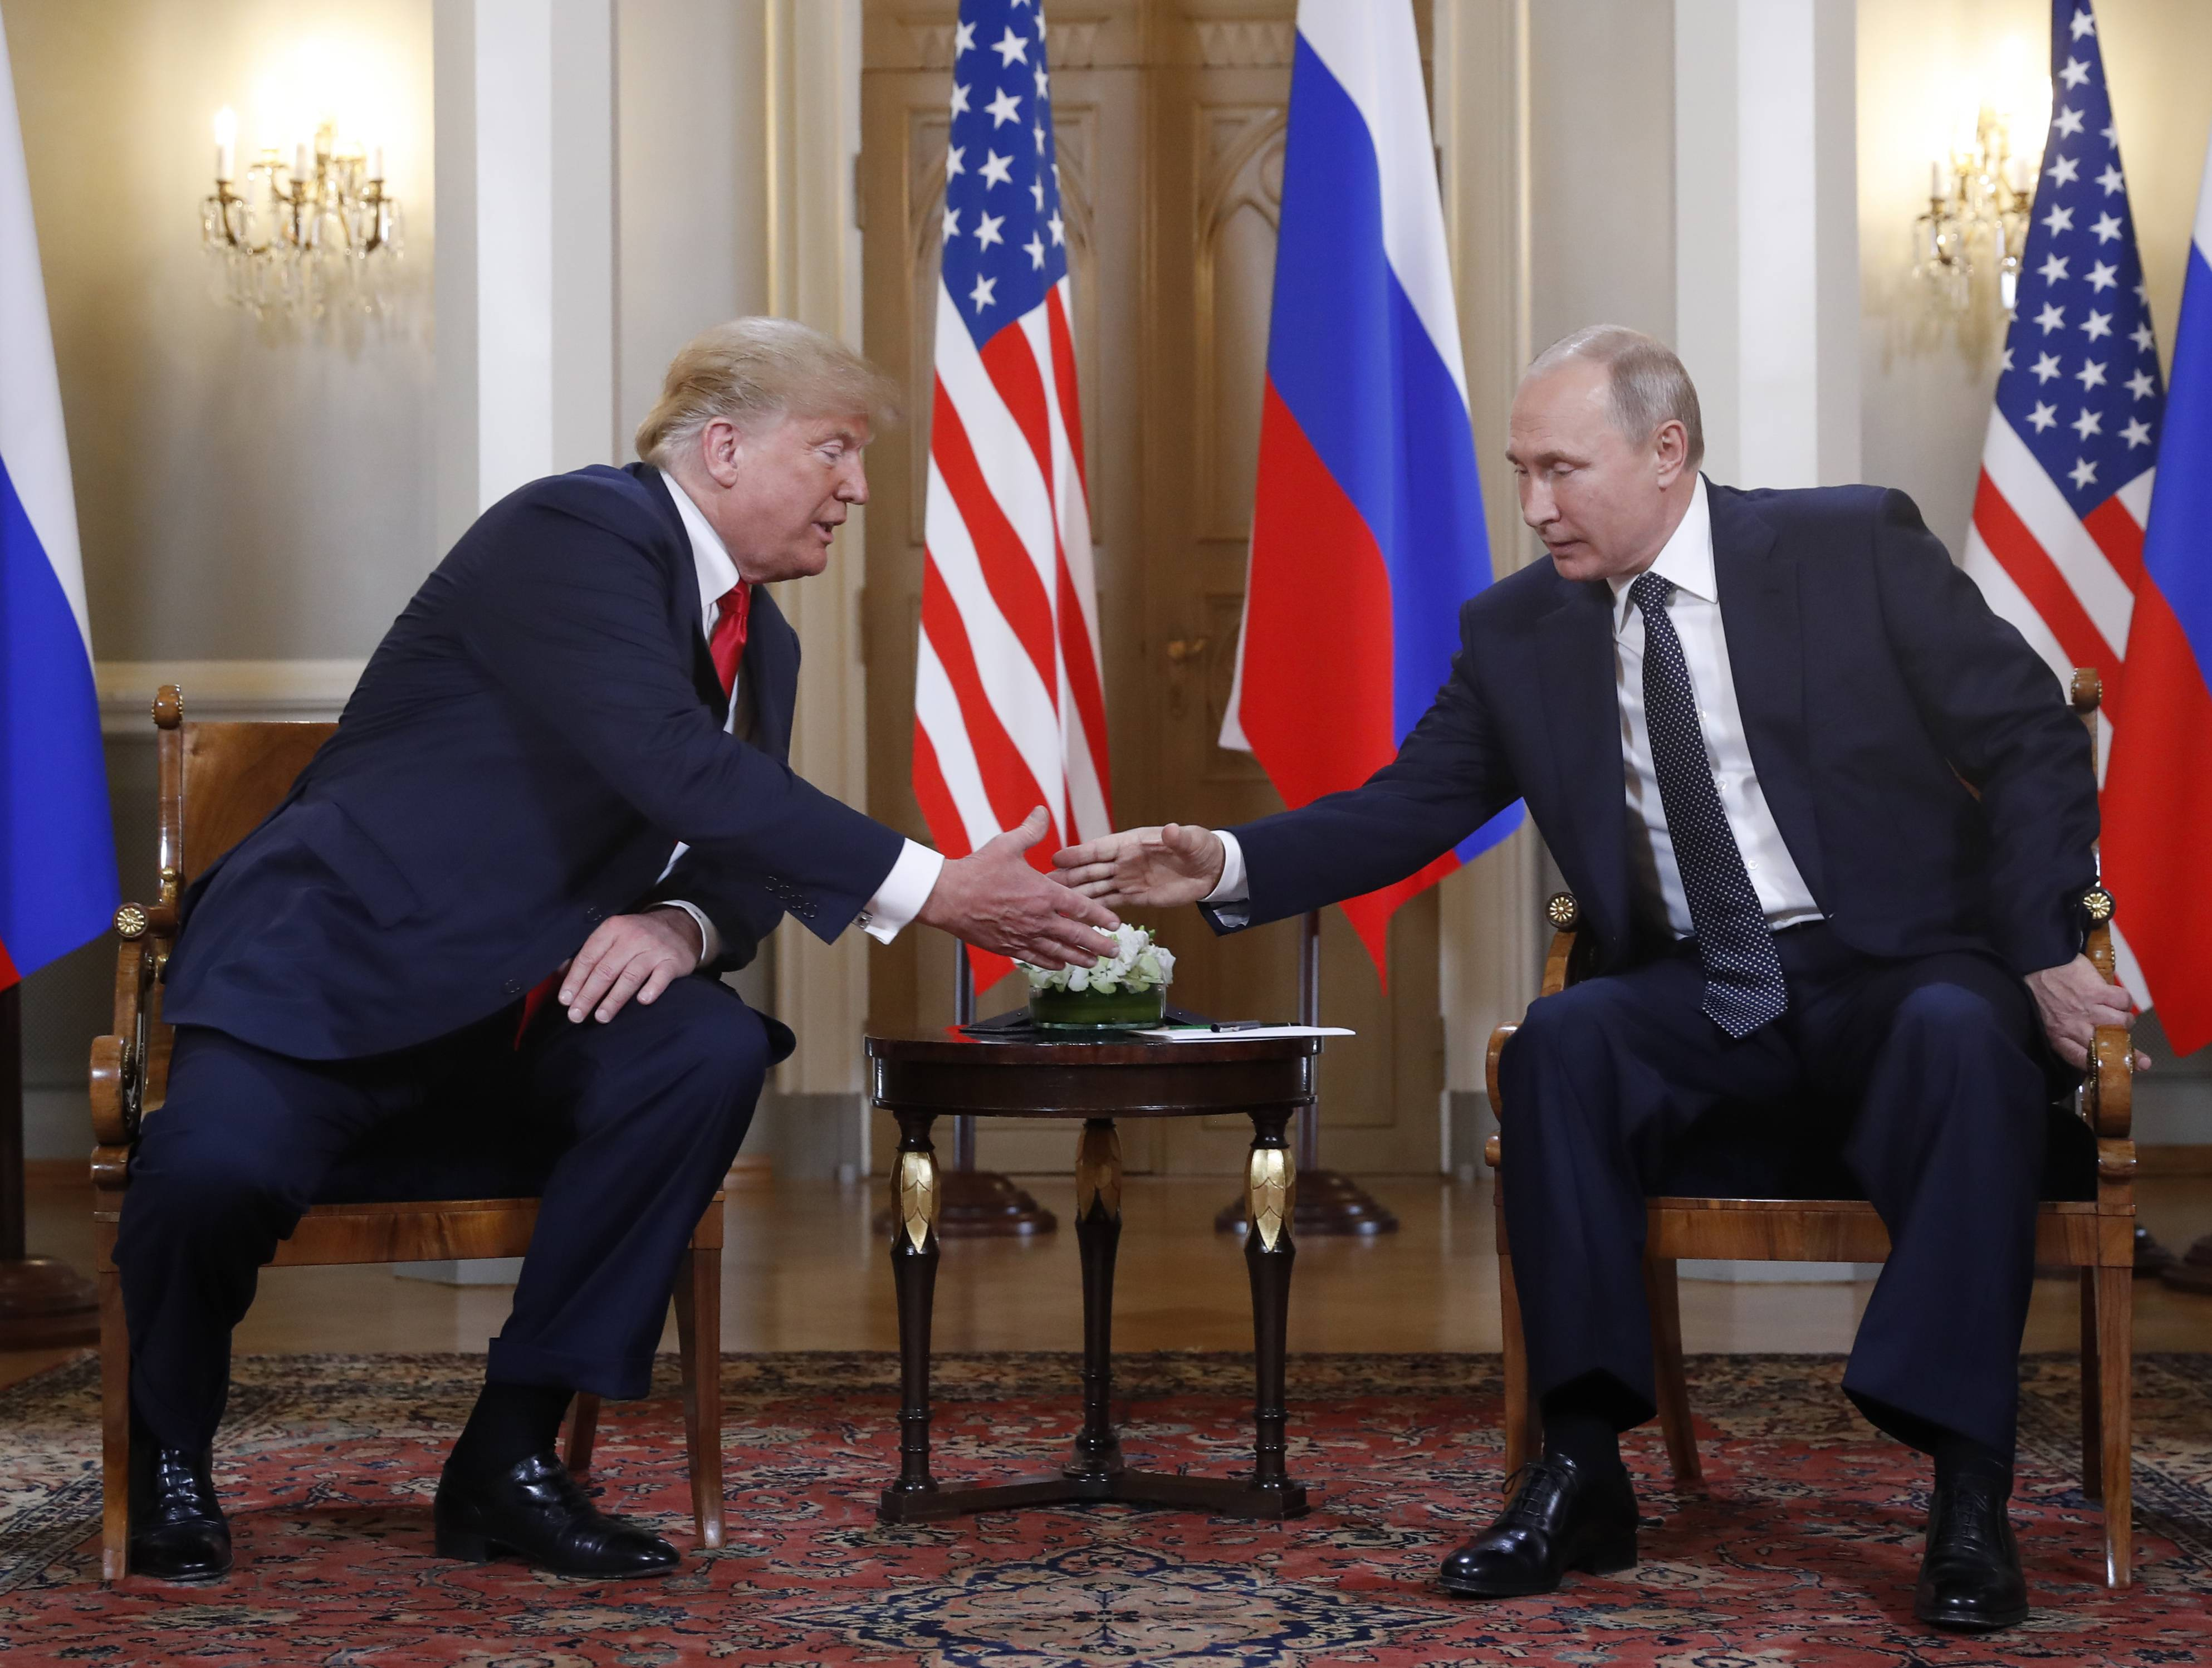 U.S. President Donald Trump, left, and Russian President Vladimir Putin shake hands at the beginning of a meeting Monday at the Presidential Palace in Helsinki, Finland.